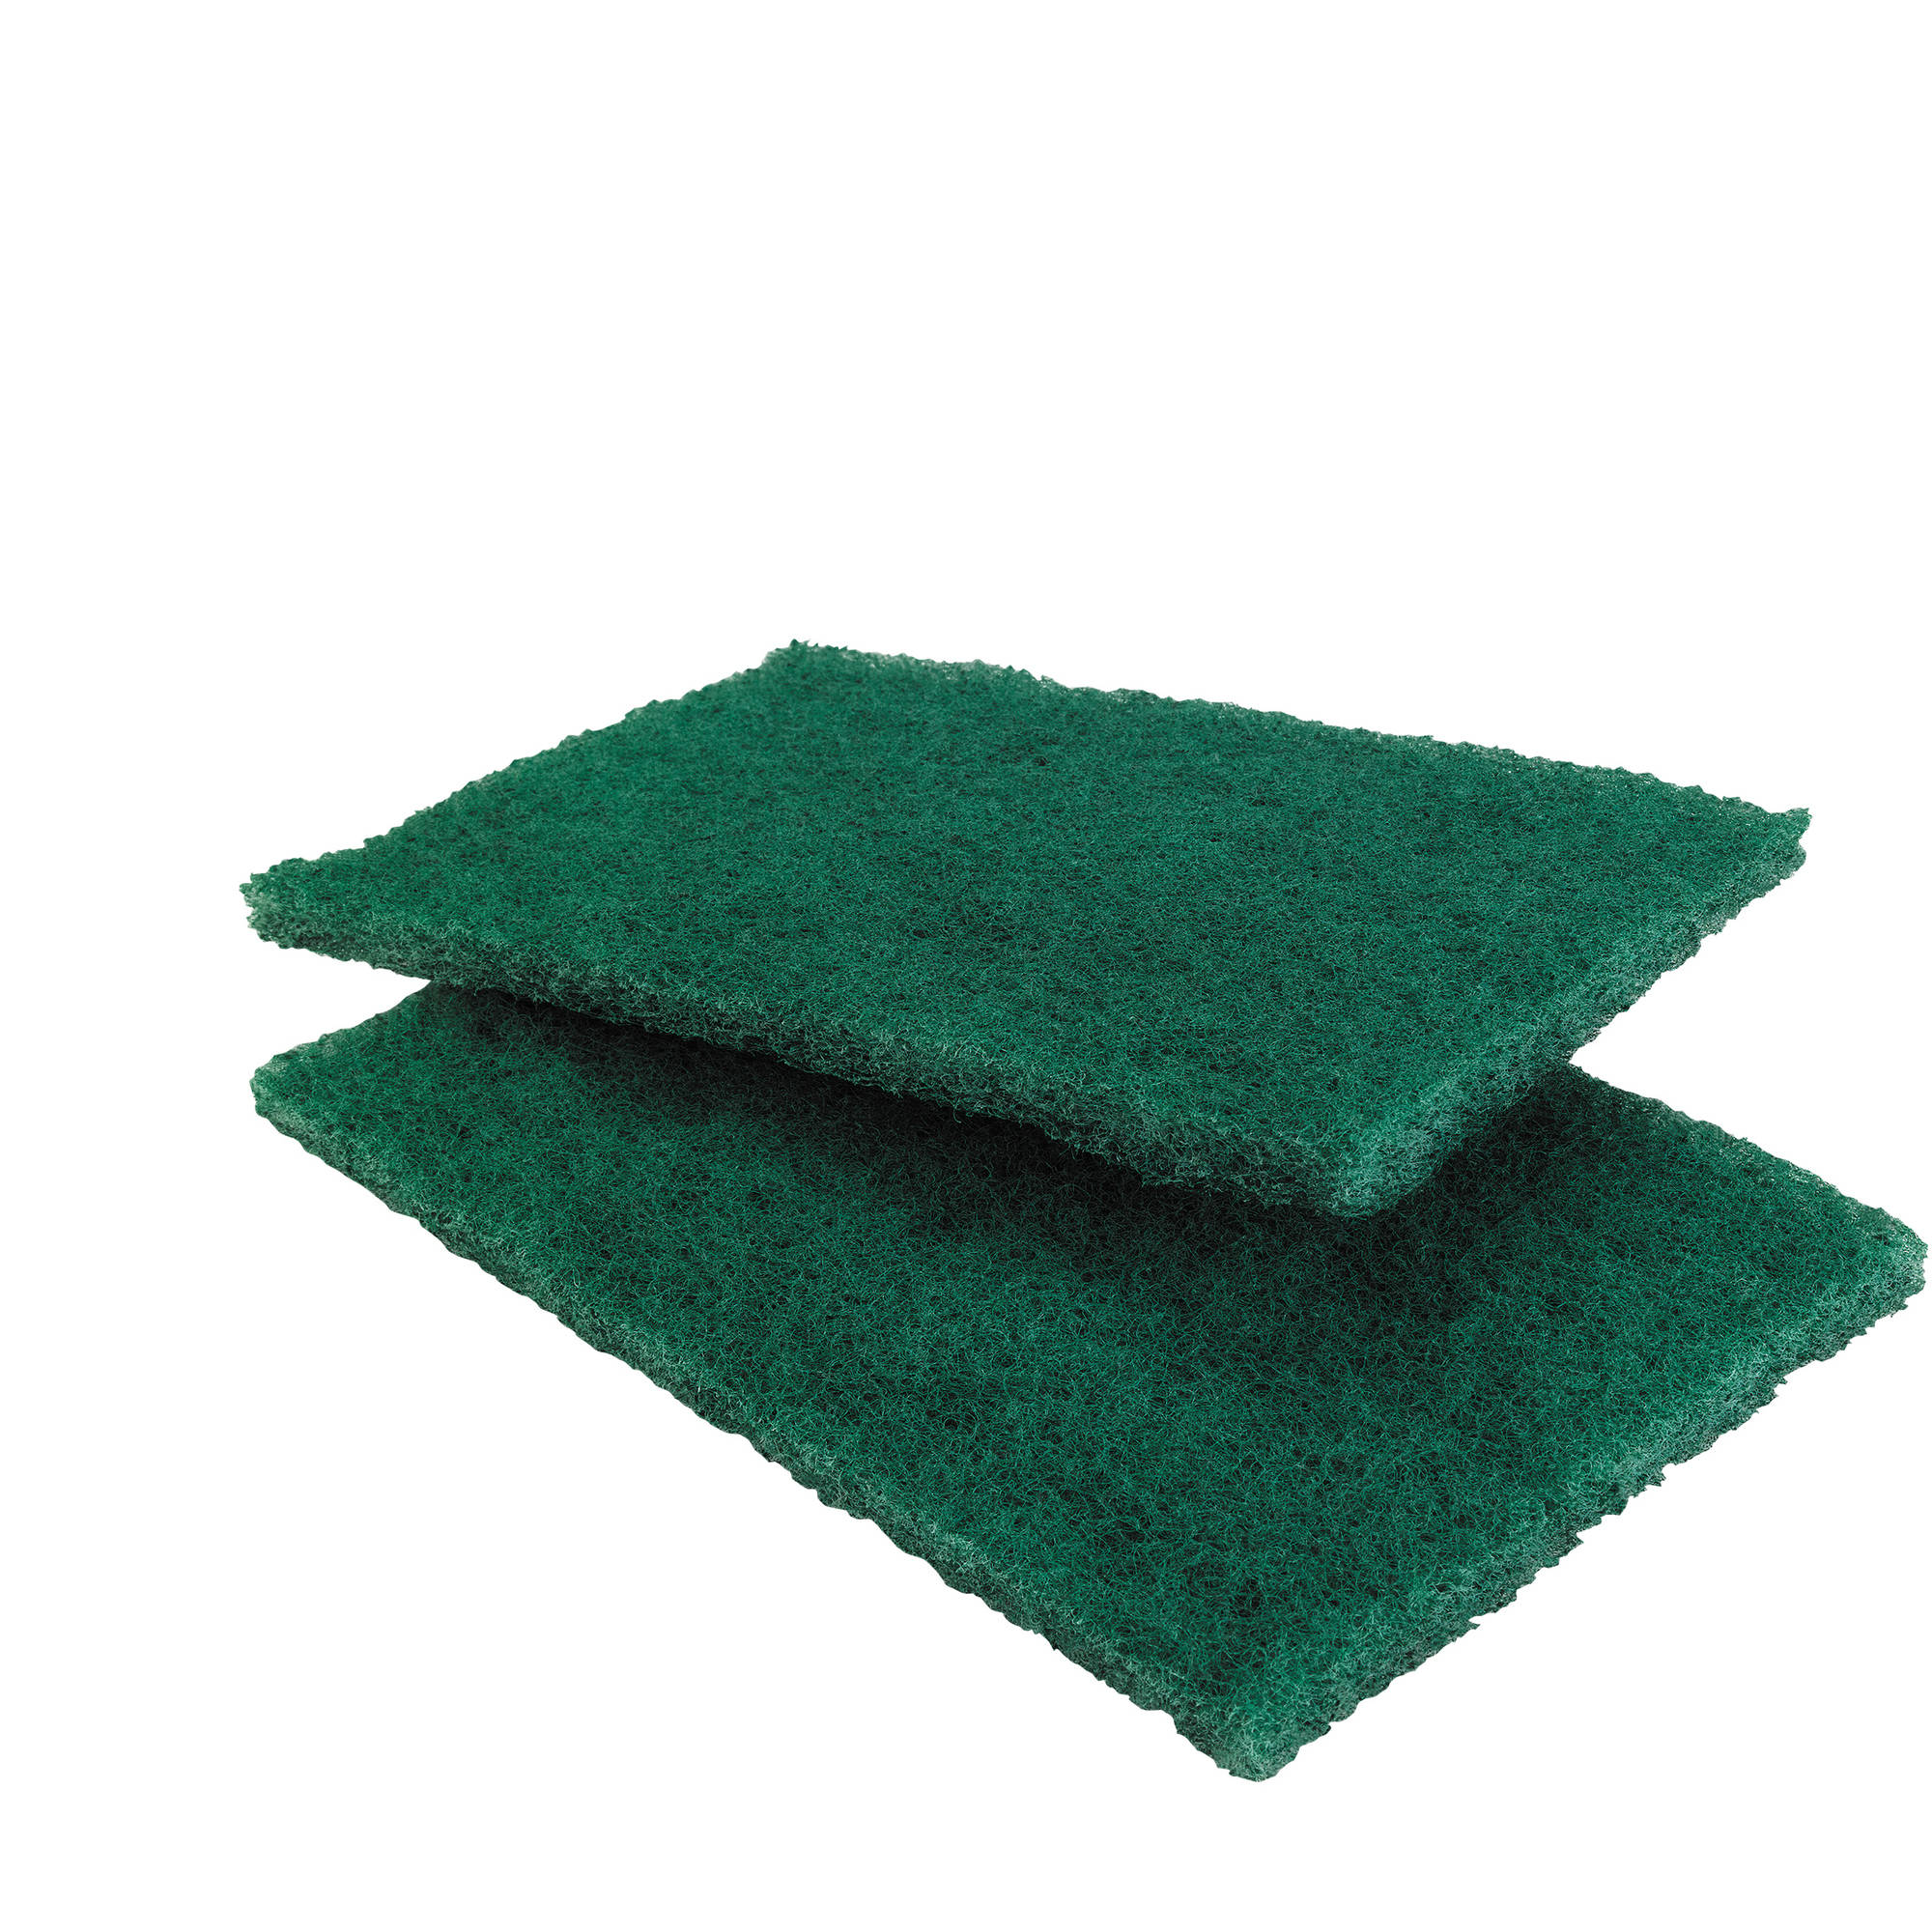 Scotch-Brite Heavy Duty Scour Pad 3 Pack